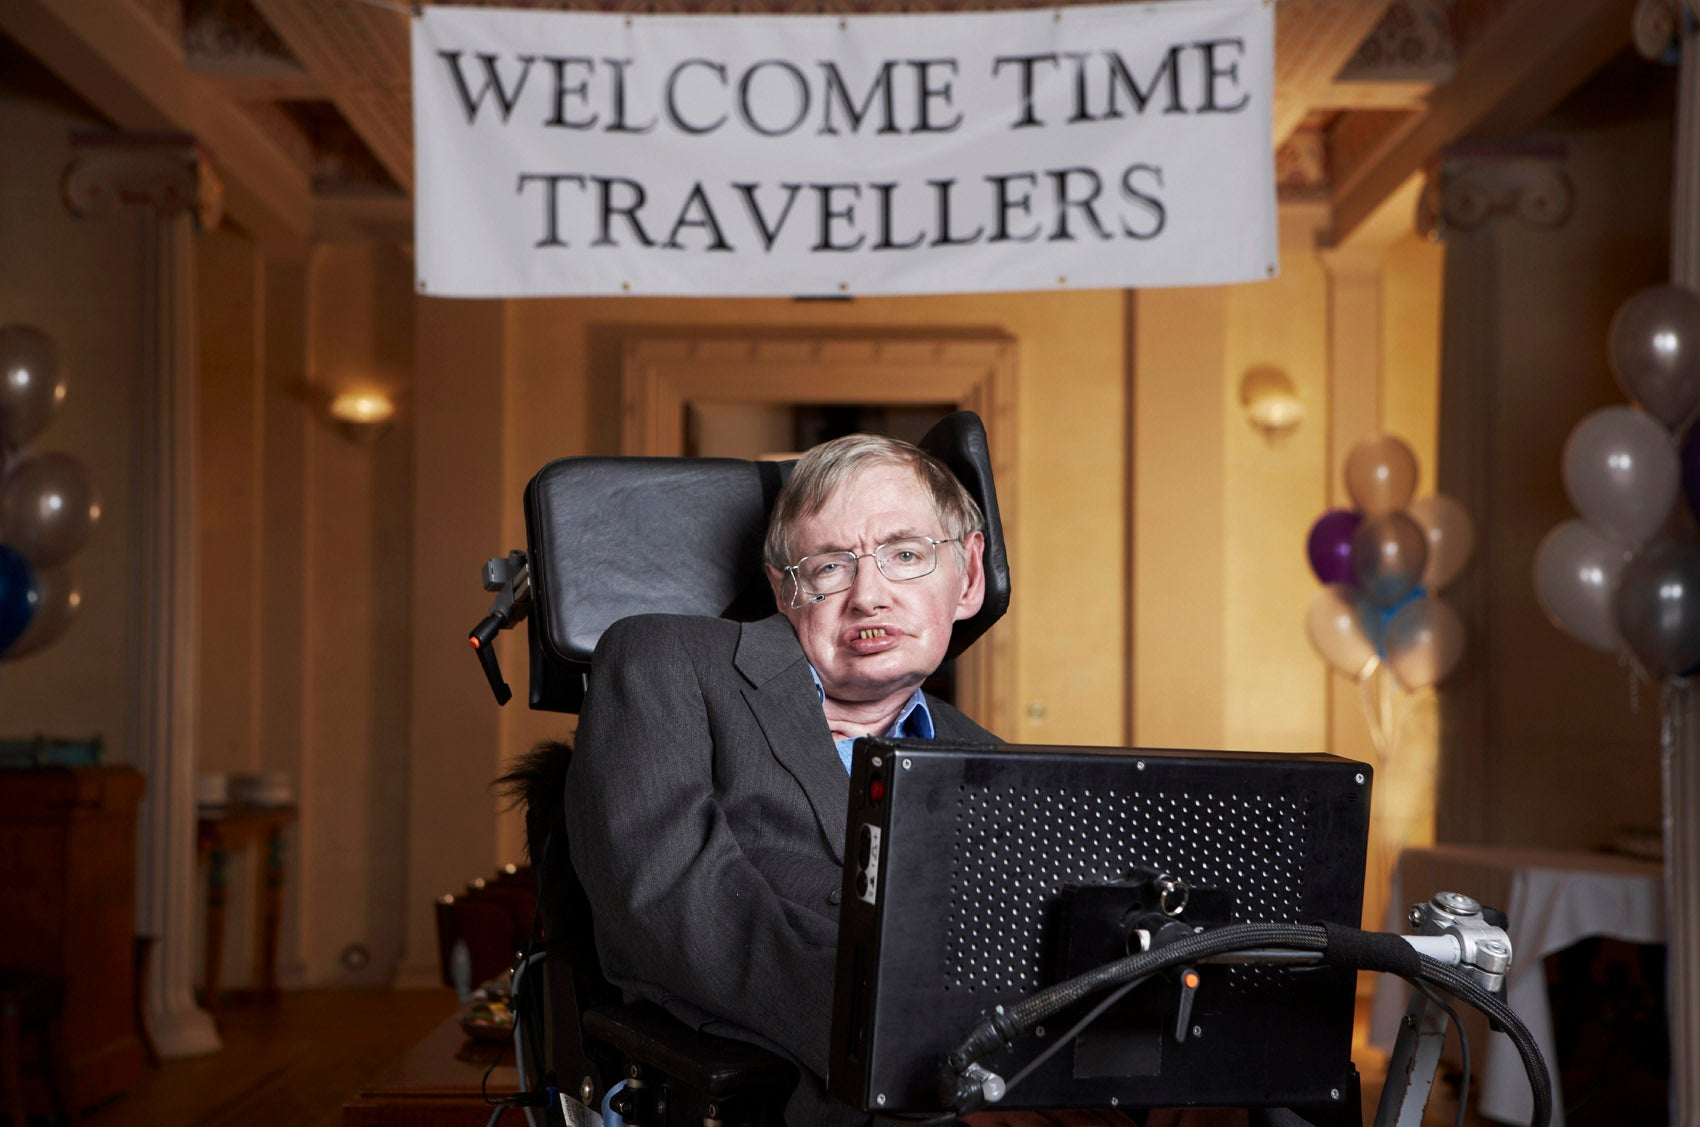 stephen hawking sits in front of a sign that says